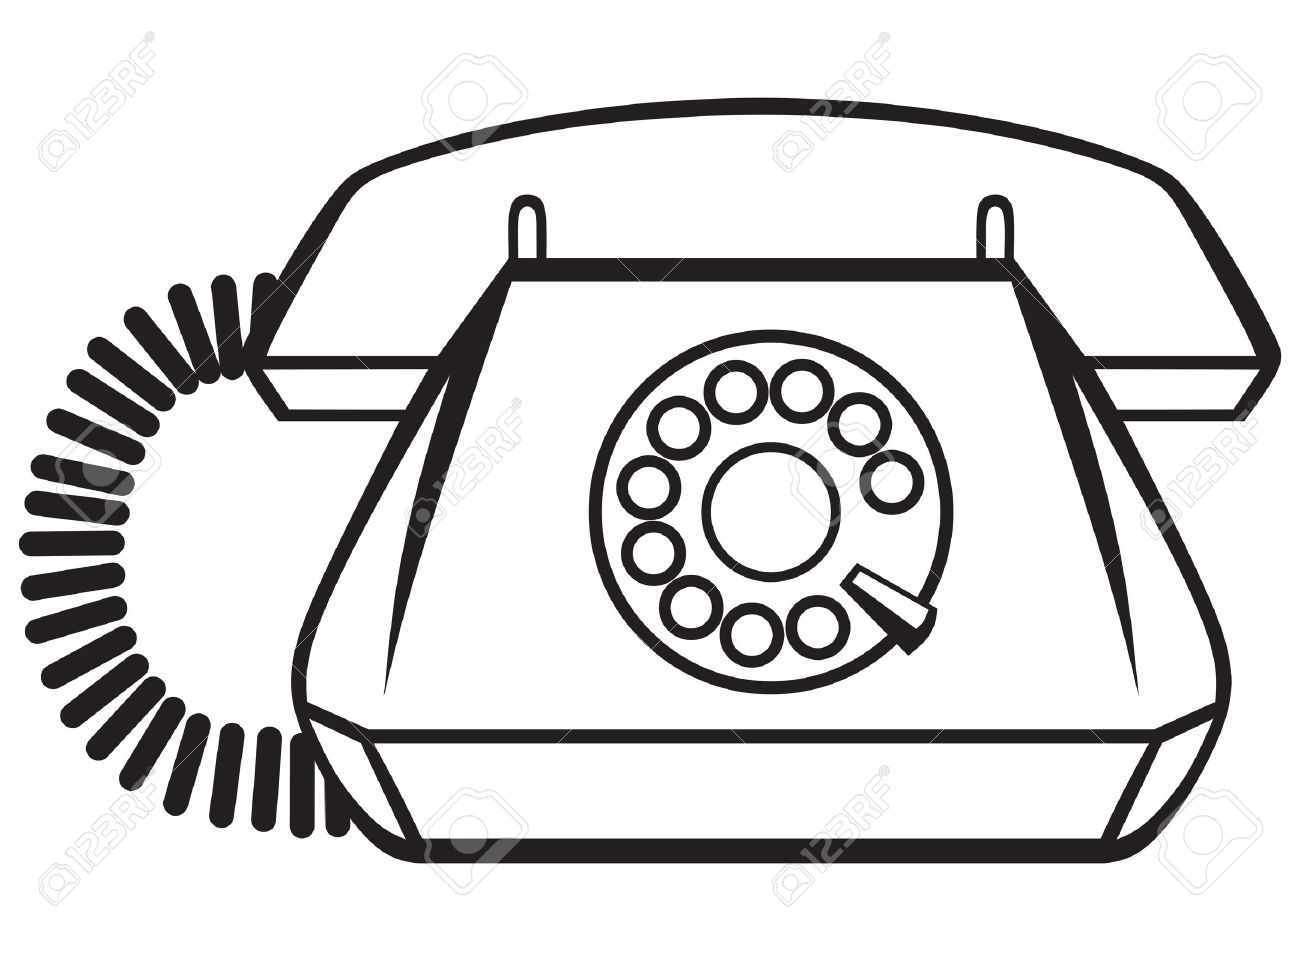 Old Phone Isolated On White Background Silhouette Stock Vector